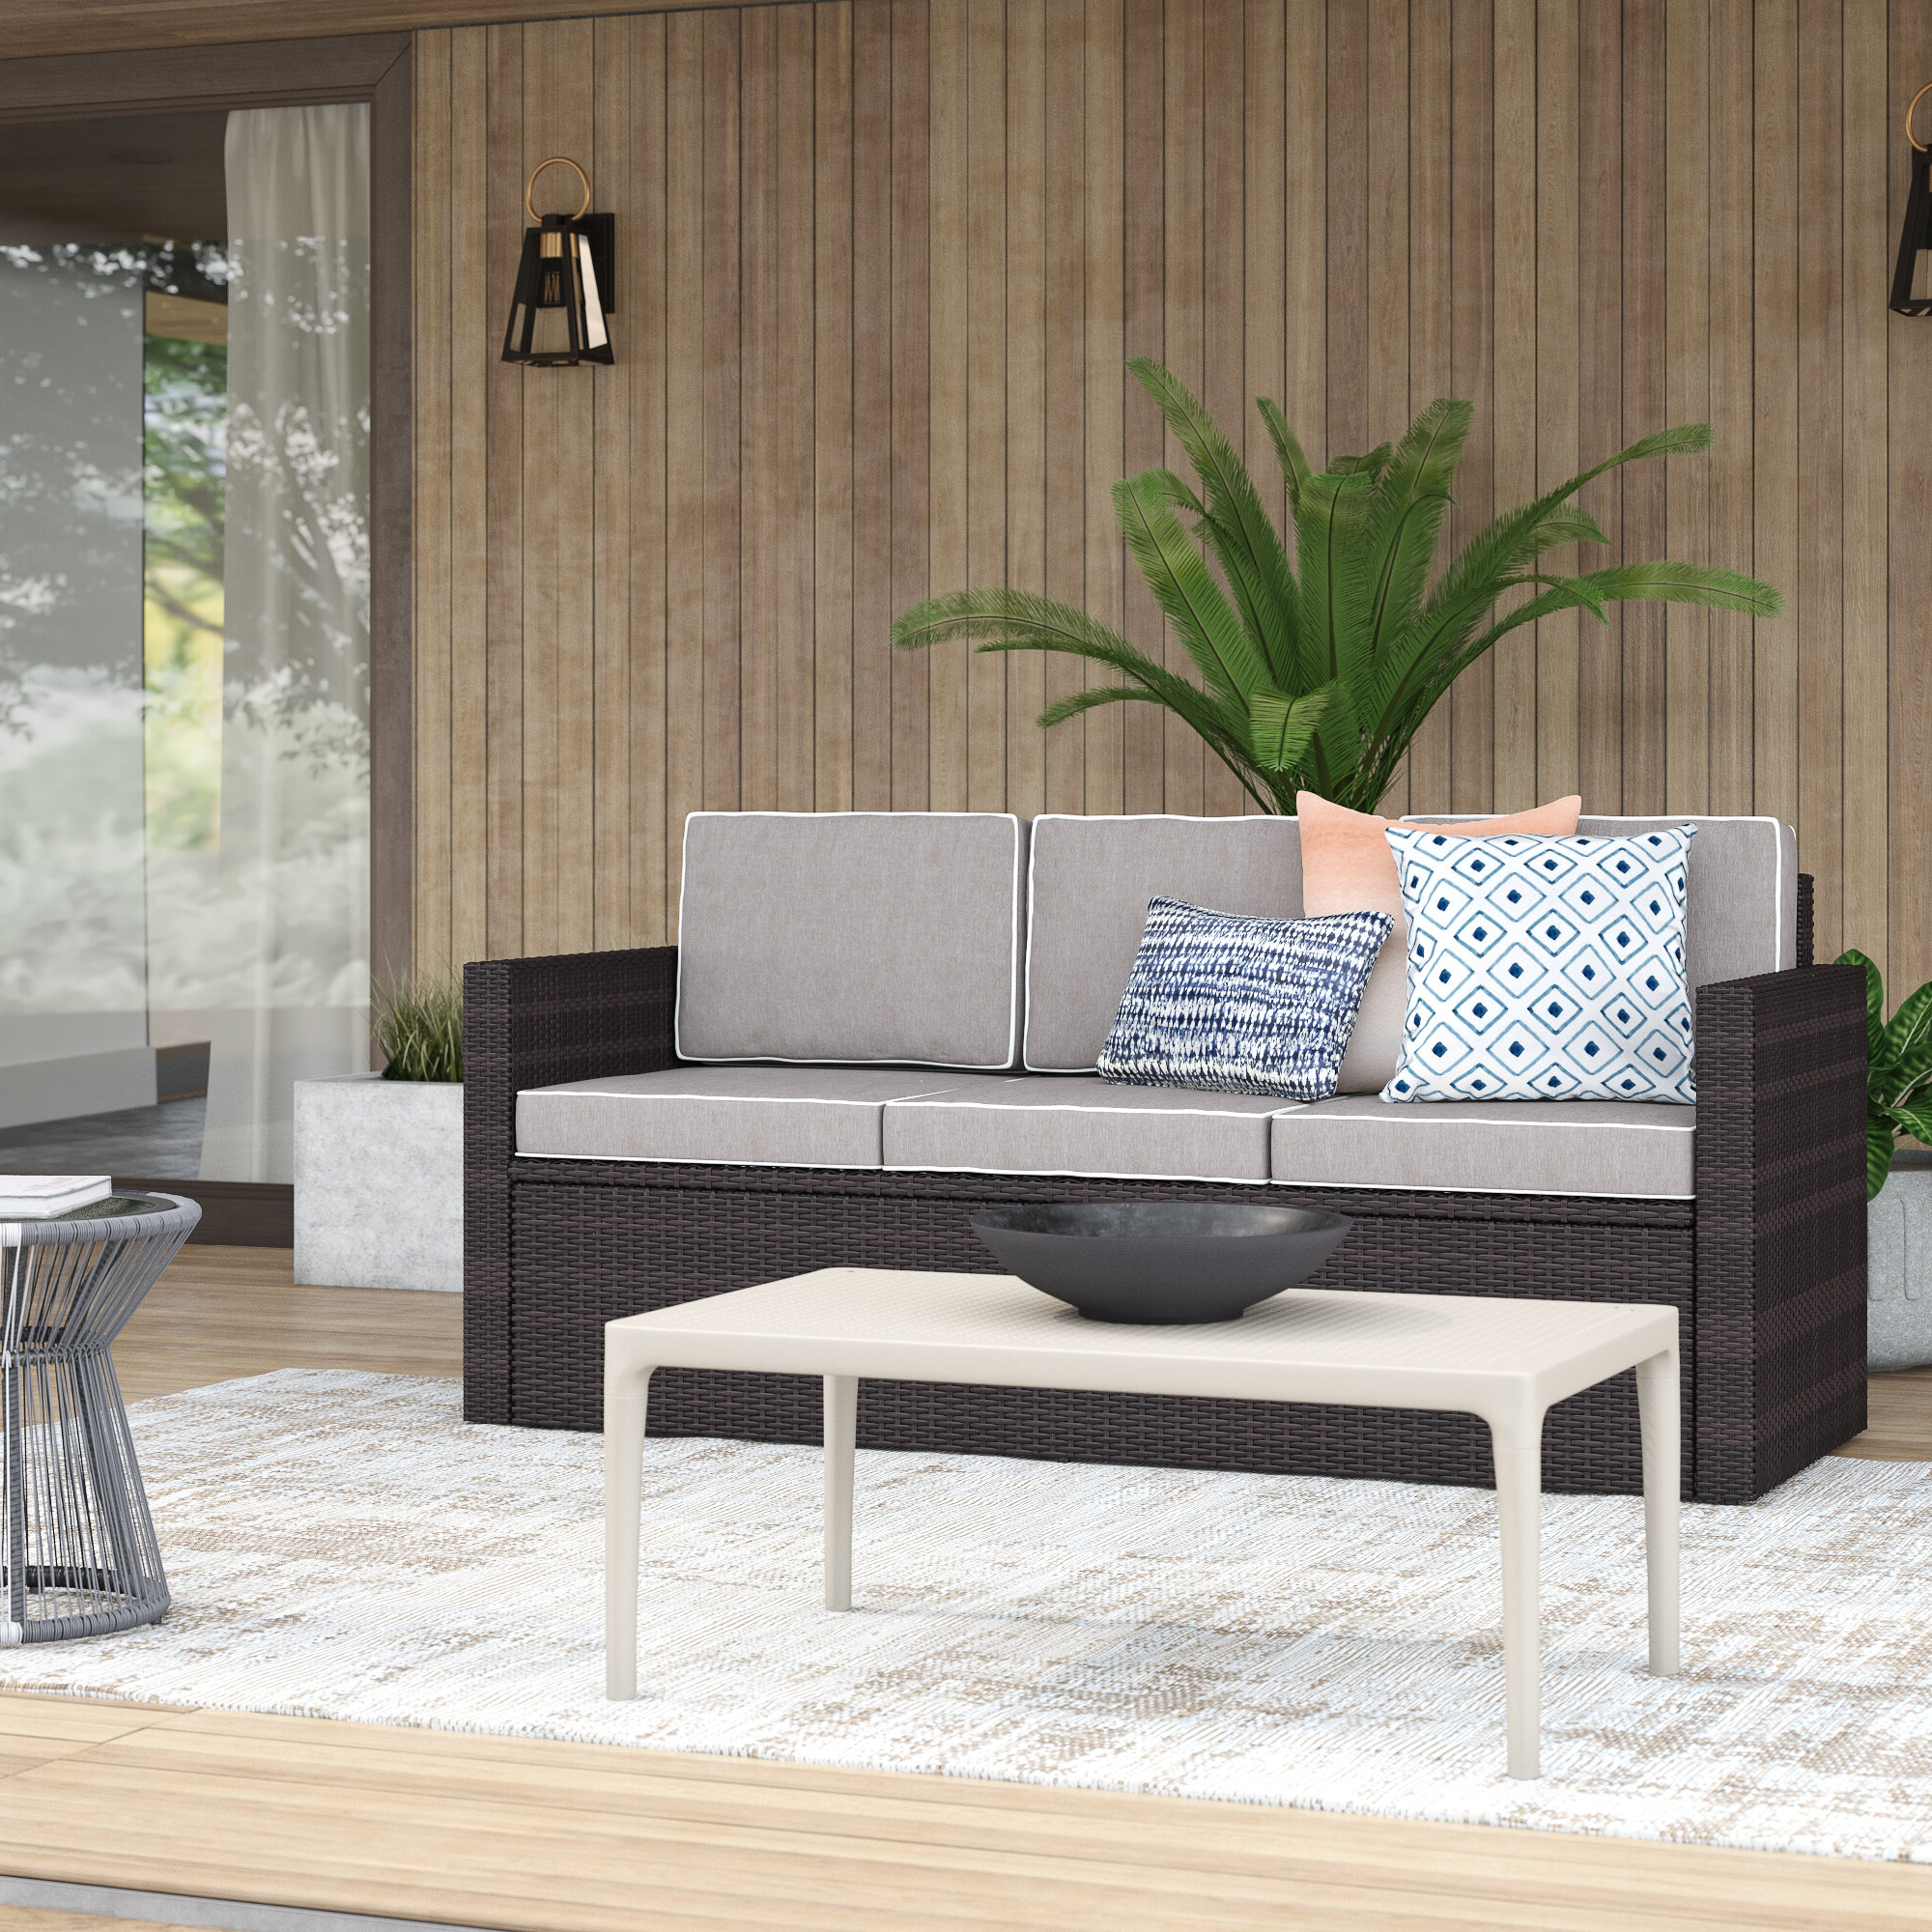 Clifford Patio Sofas With Cushions With Regard To 2020 Belton Patio Sofa With Cushions (View 3 of 20)